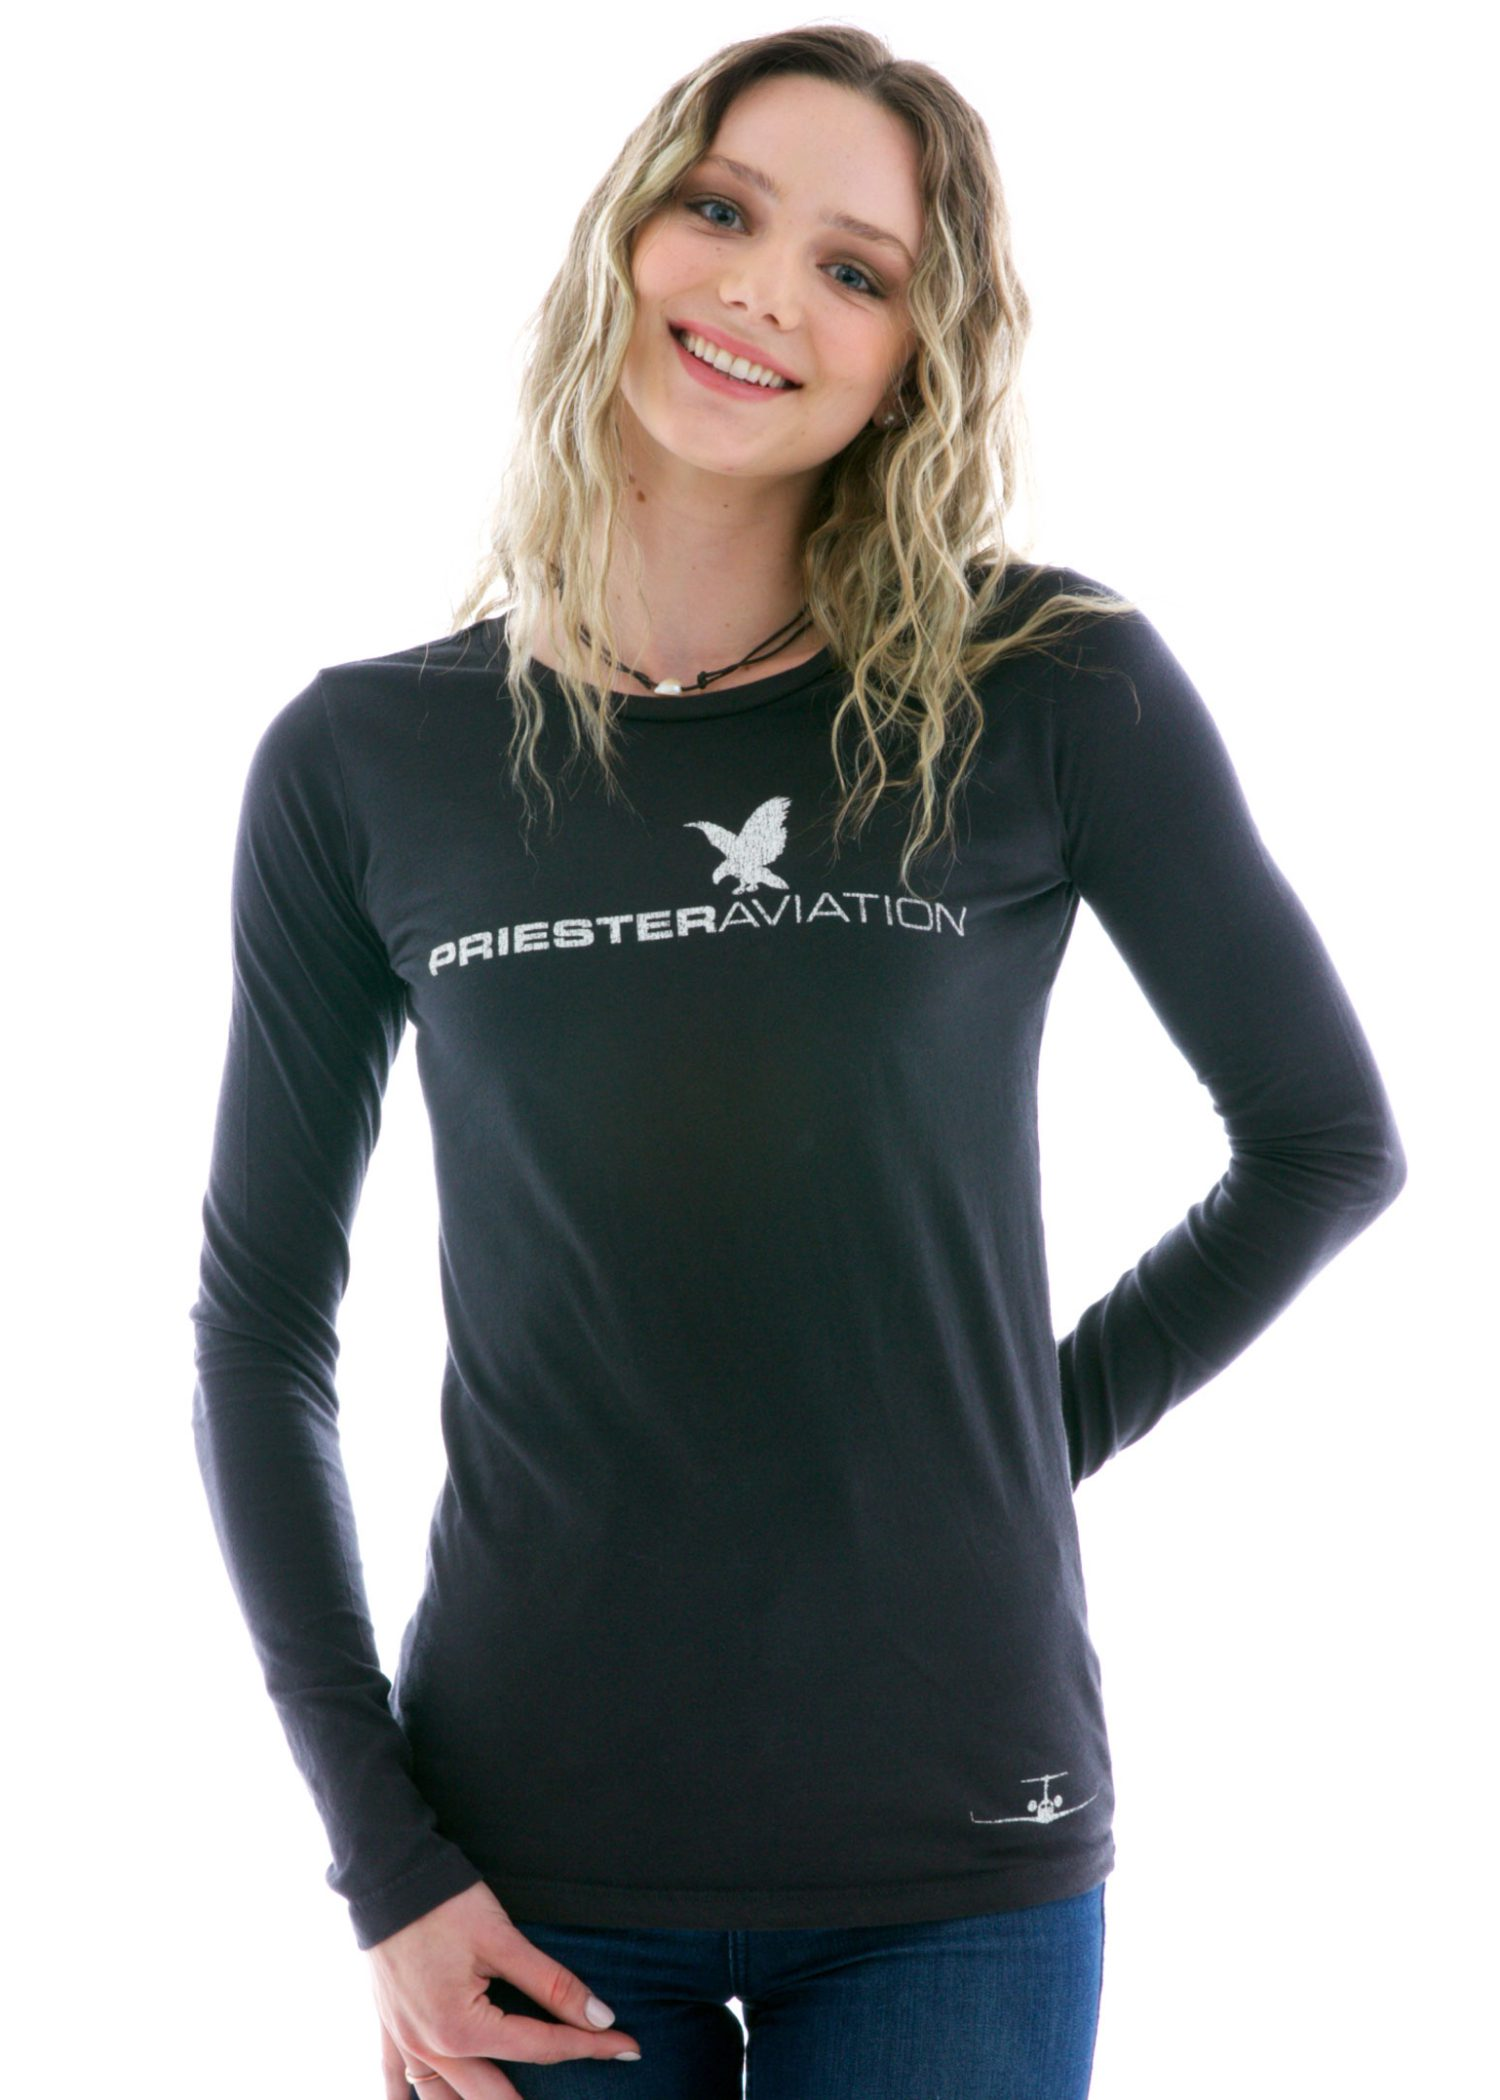 Women's Long Sleeve Crew T-Shirt